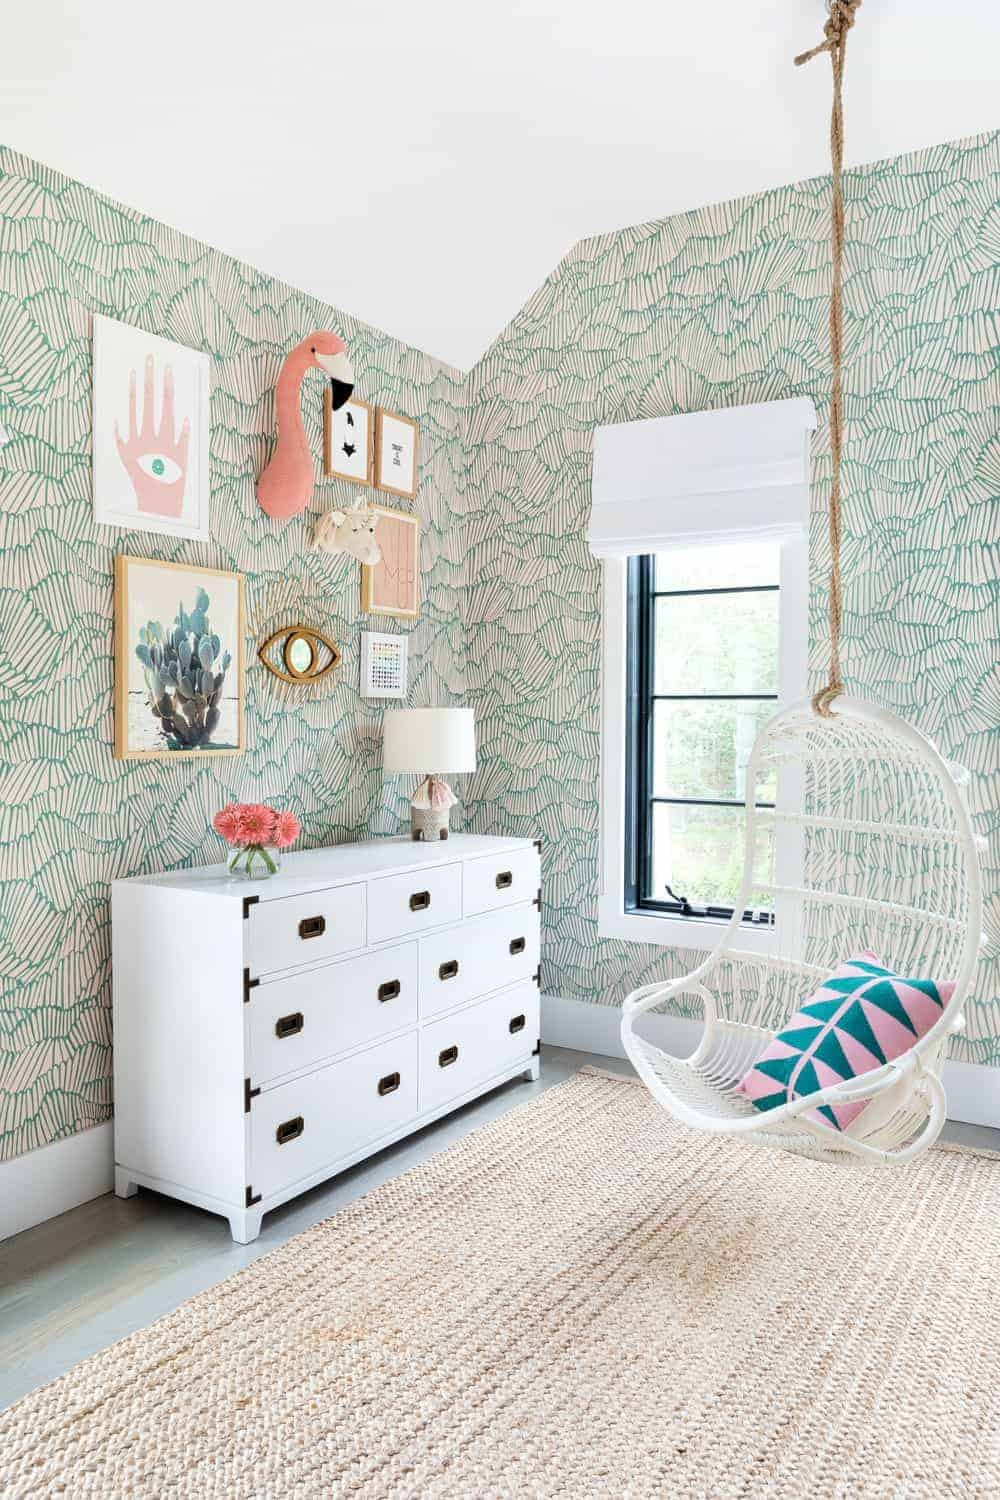 The kids bedroom boasts charming green walls along with a white ceiling and a large brown area rug.